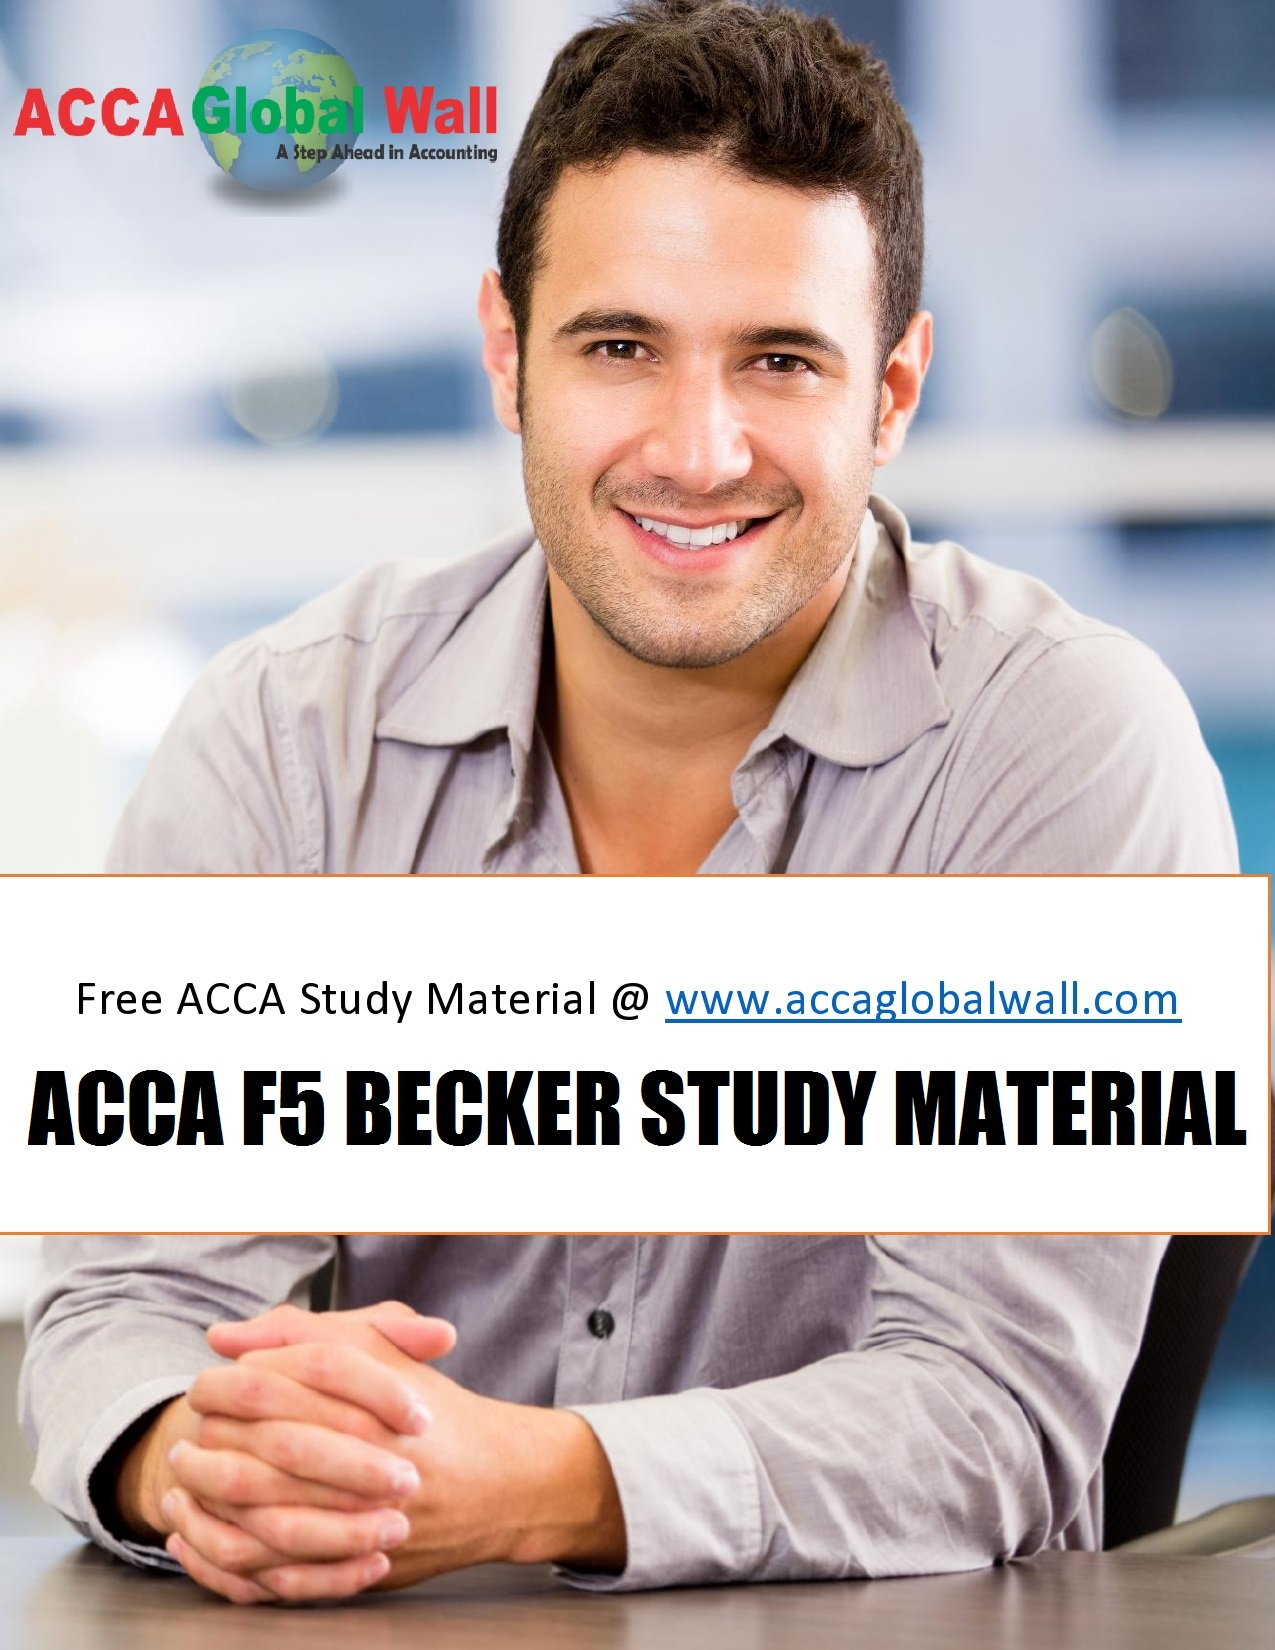 ACCA F5 BECKER STUDY MATERIAL ACCAGLOBALWALL.COM